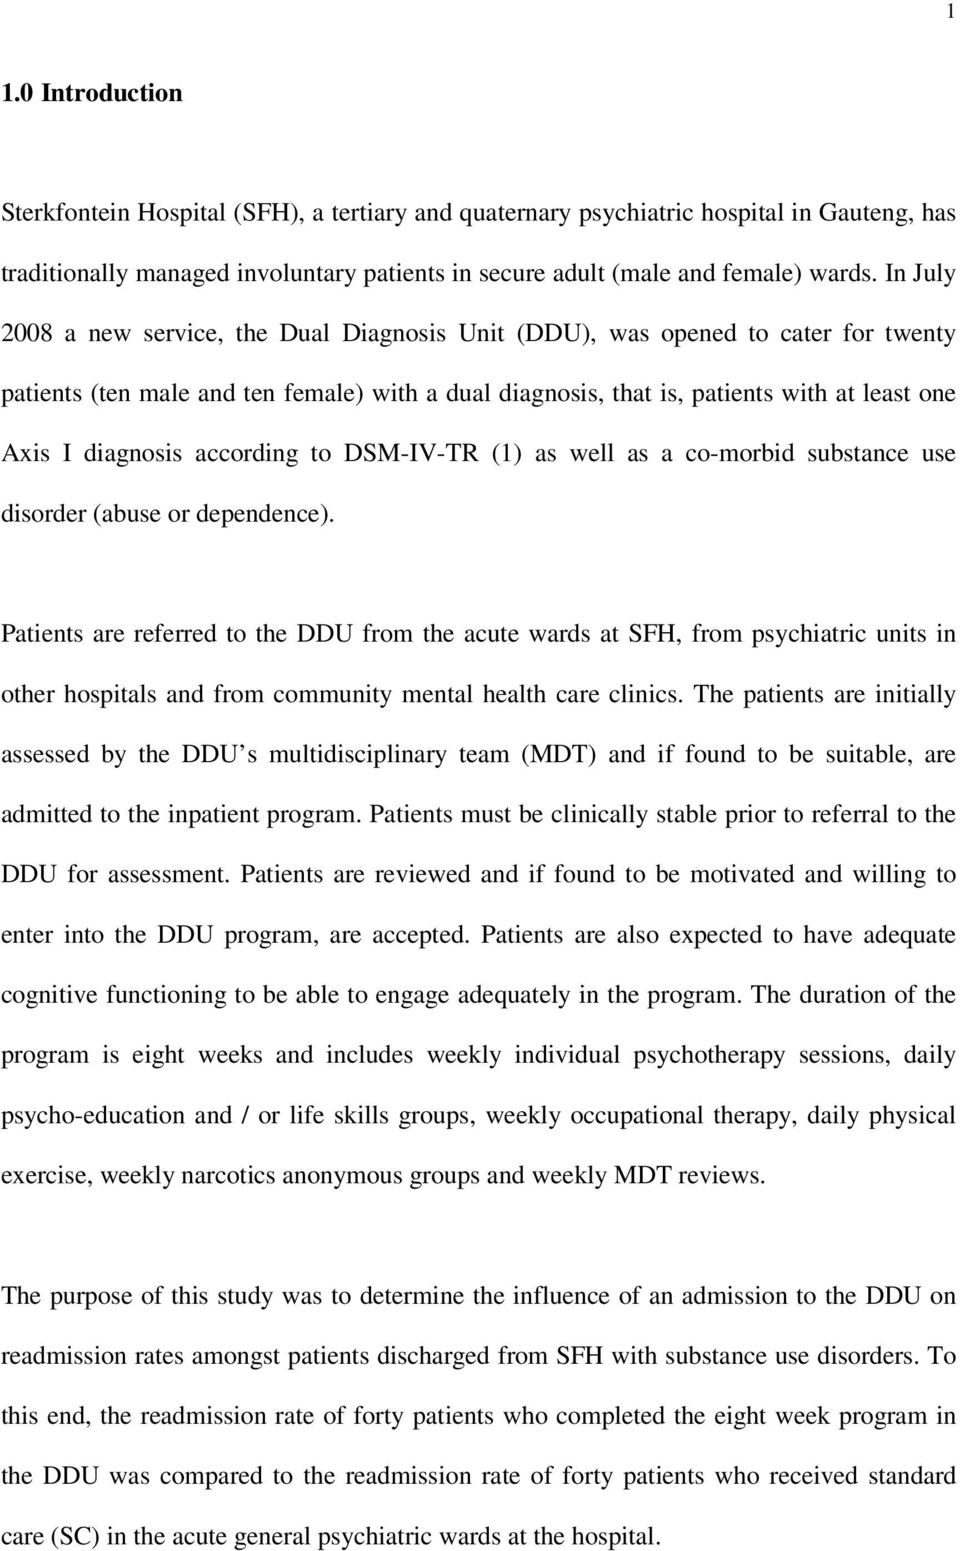 diagnosis according to DSM-IV-TR (1) as well as a co-morbid substance use disorder (abuse or dependence).